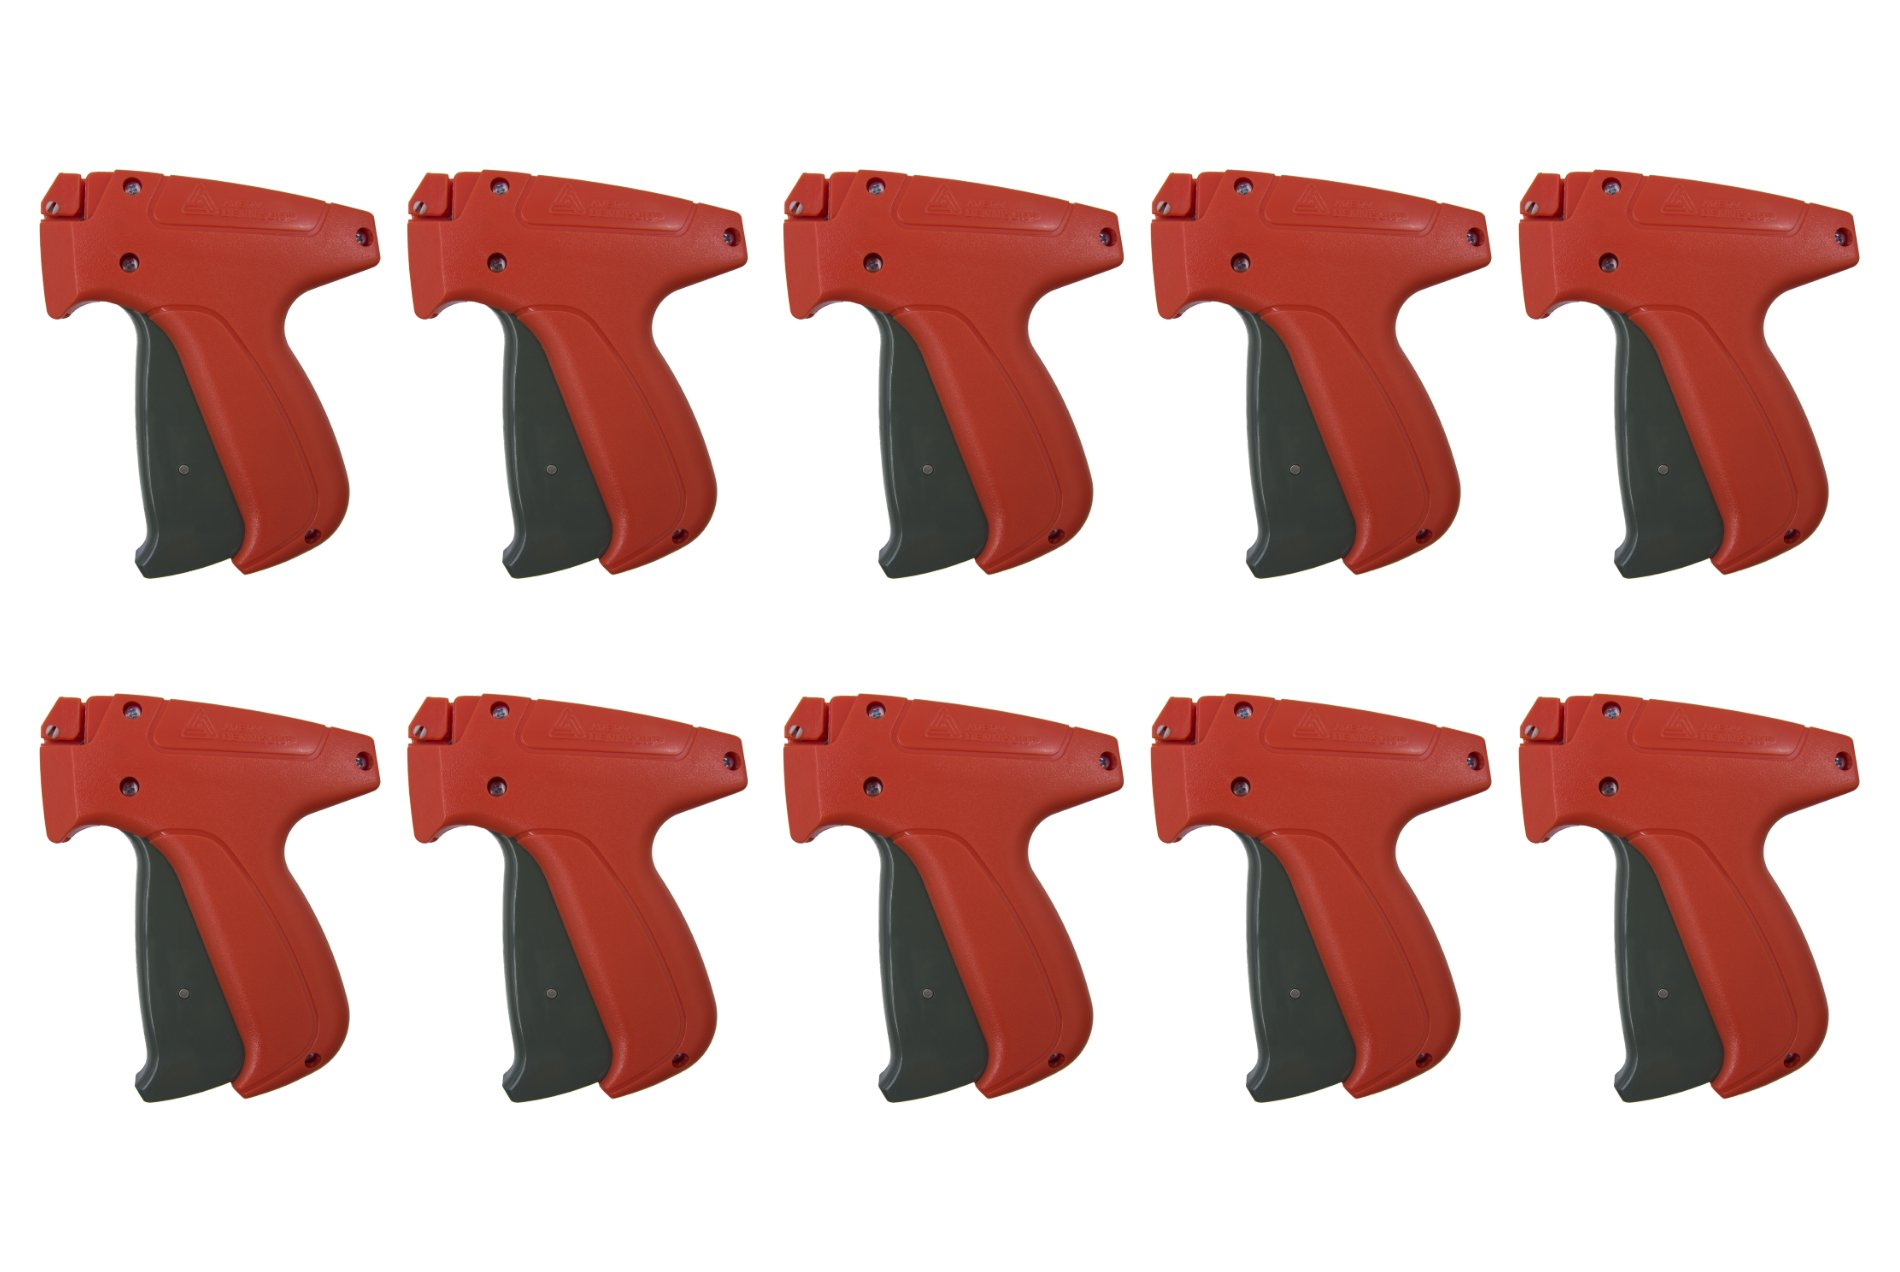 Avery Dennison Mark III Fine Tagging Gun, 10-Pack - 10 Genuine Avery Dennison 10312 Fine Tagging Guns by Avery Dennison